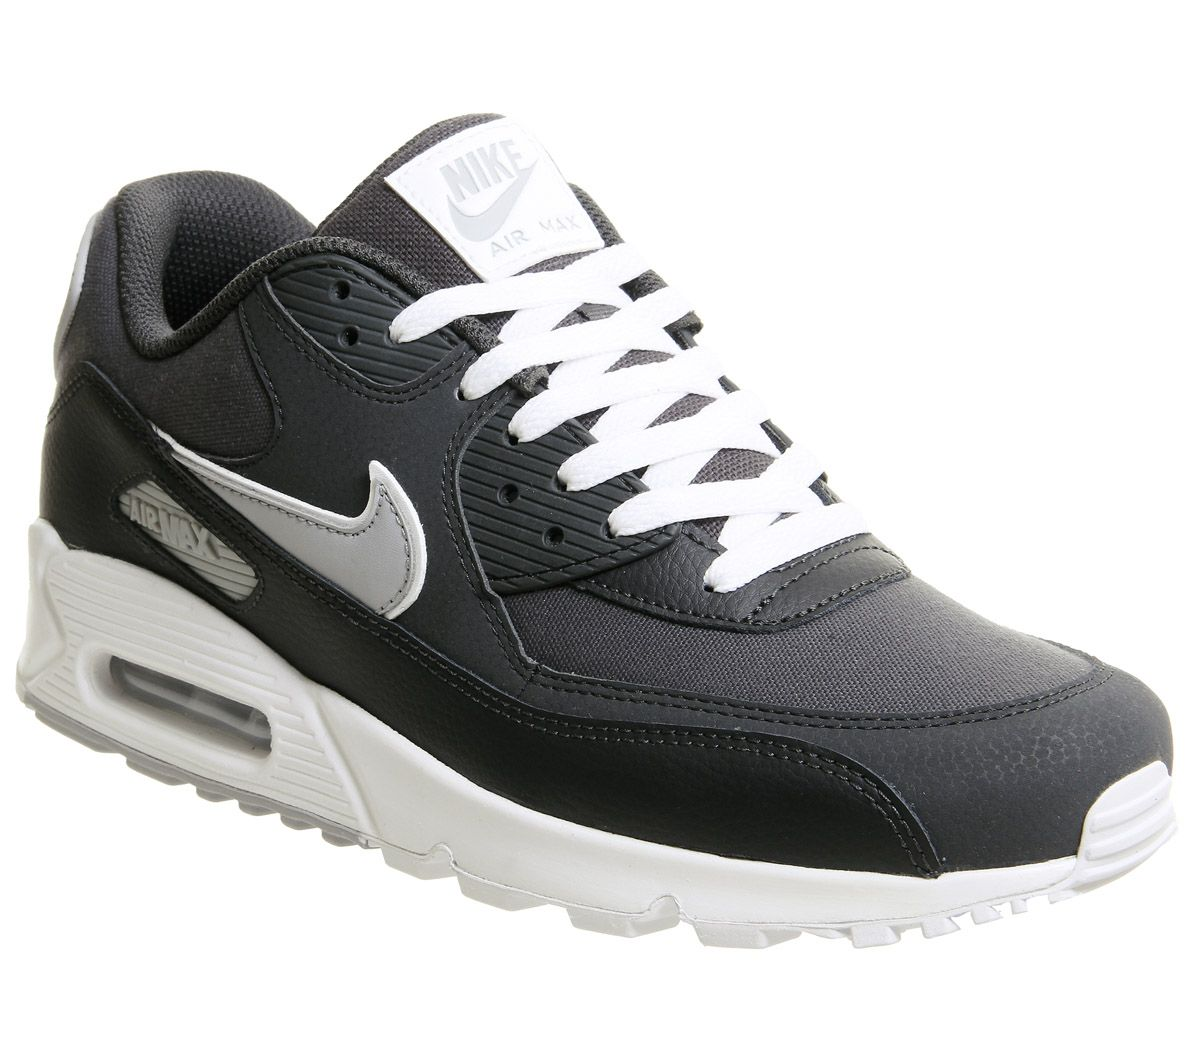 pretty nice 53108 0df3d Nike Air Max 90 Black Anthracite Wolf Grey - Unisex Sports